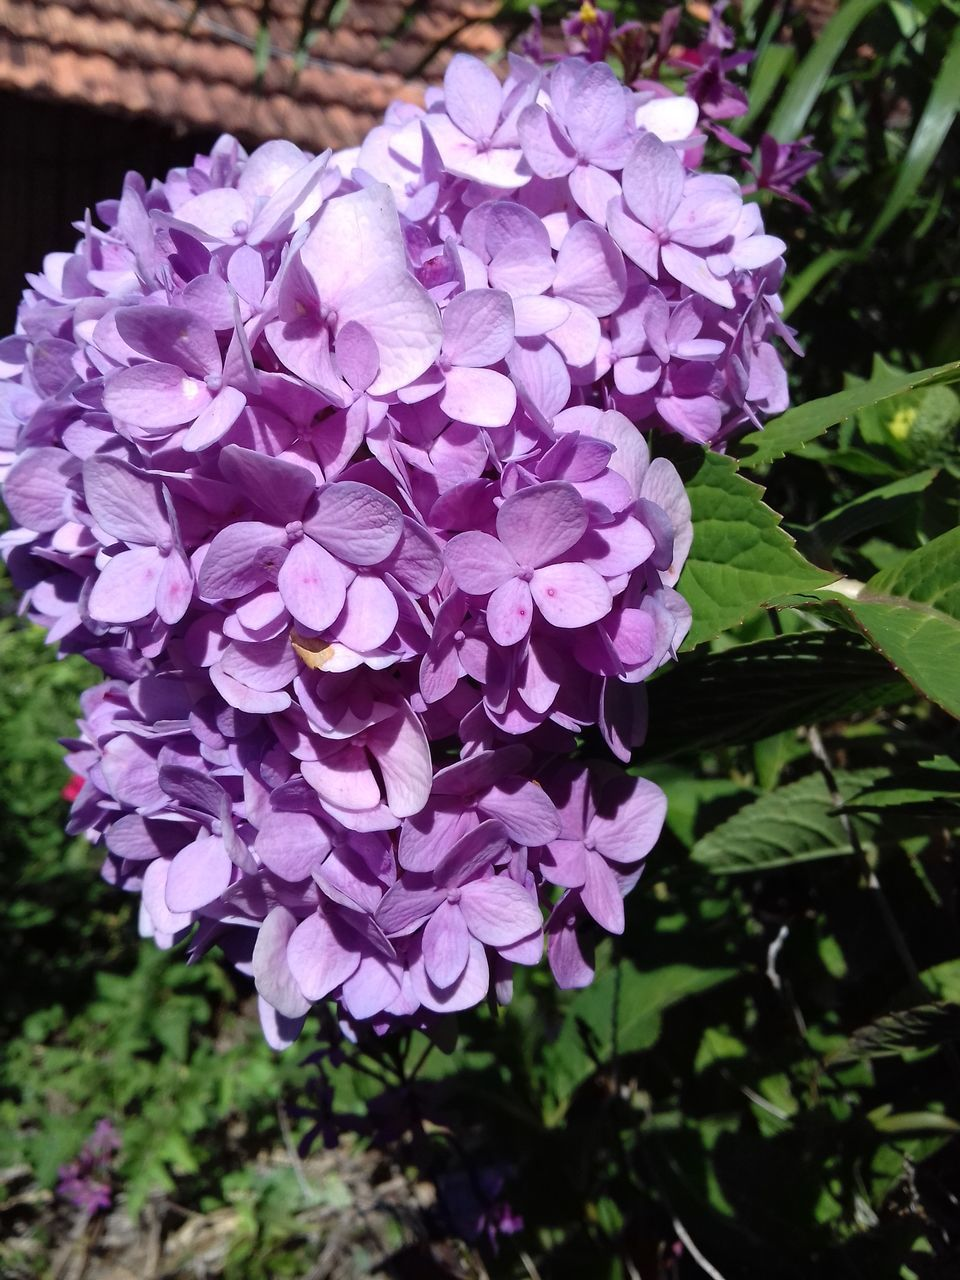 flower, nature, beauty in nature, petal, growth, purple, fragility, plant, hydrangea, freshness, blooming, lilac, outdoors, no people, day, flower head, close-up